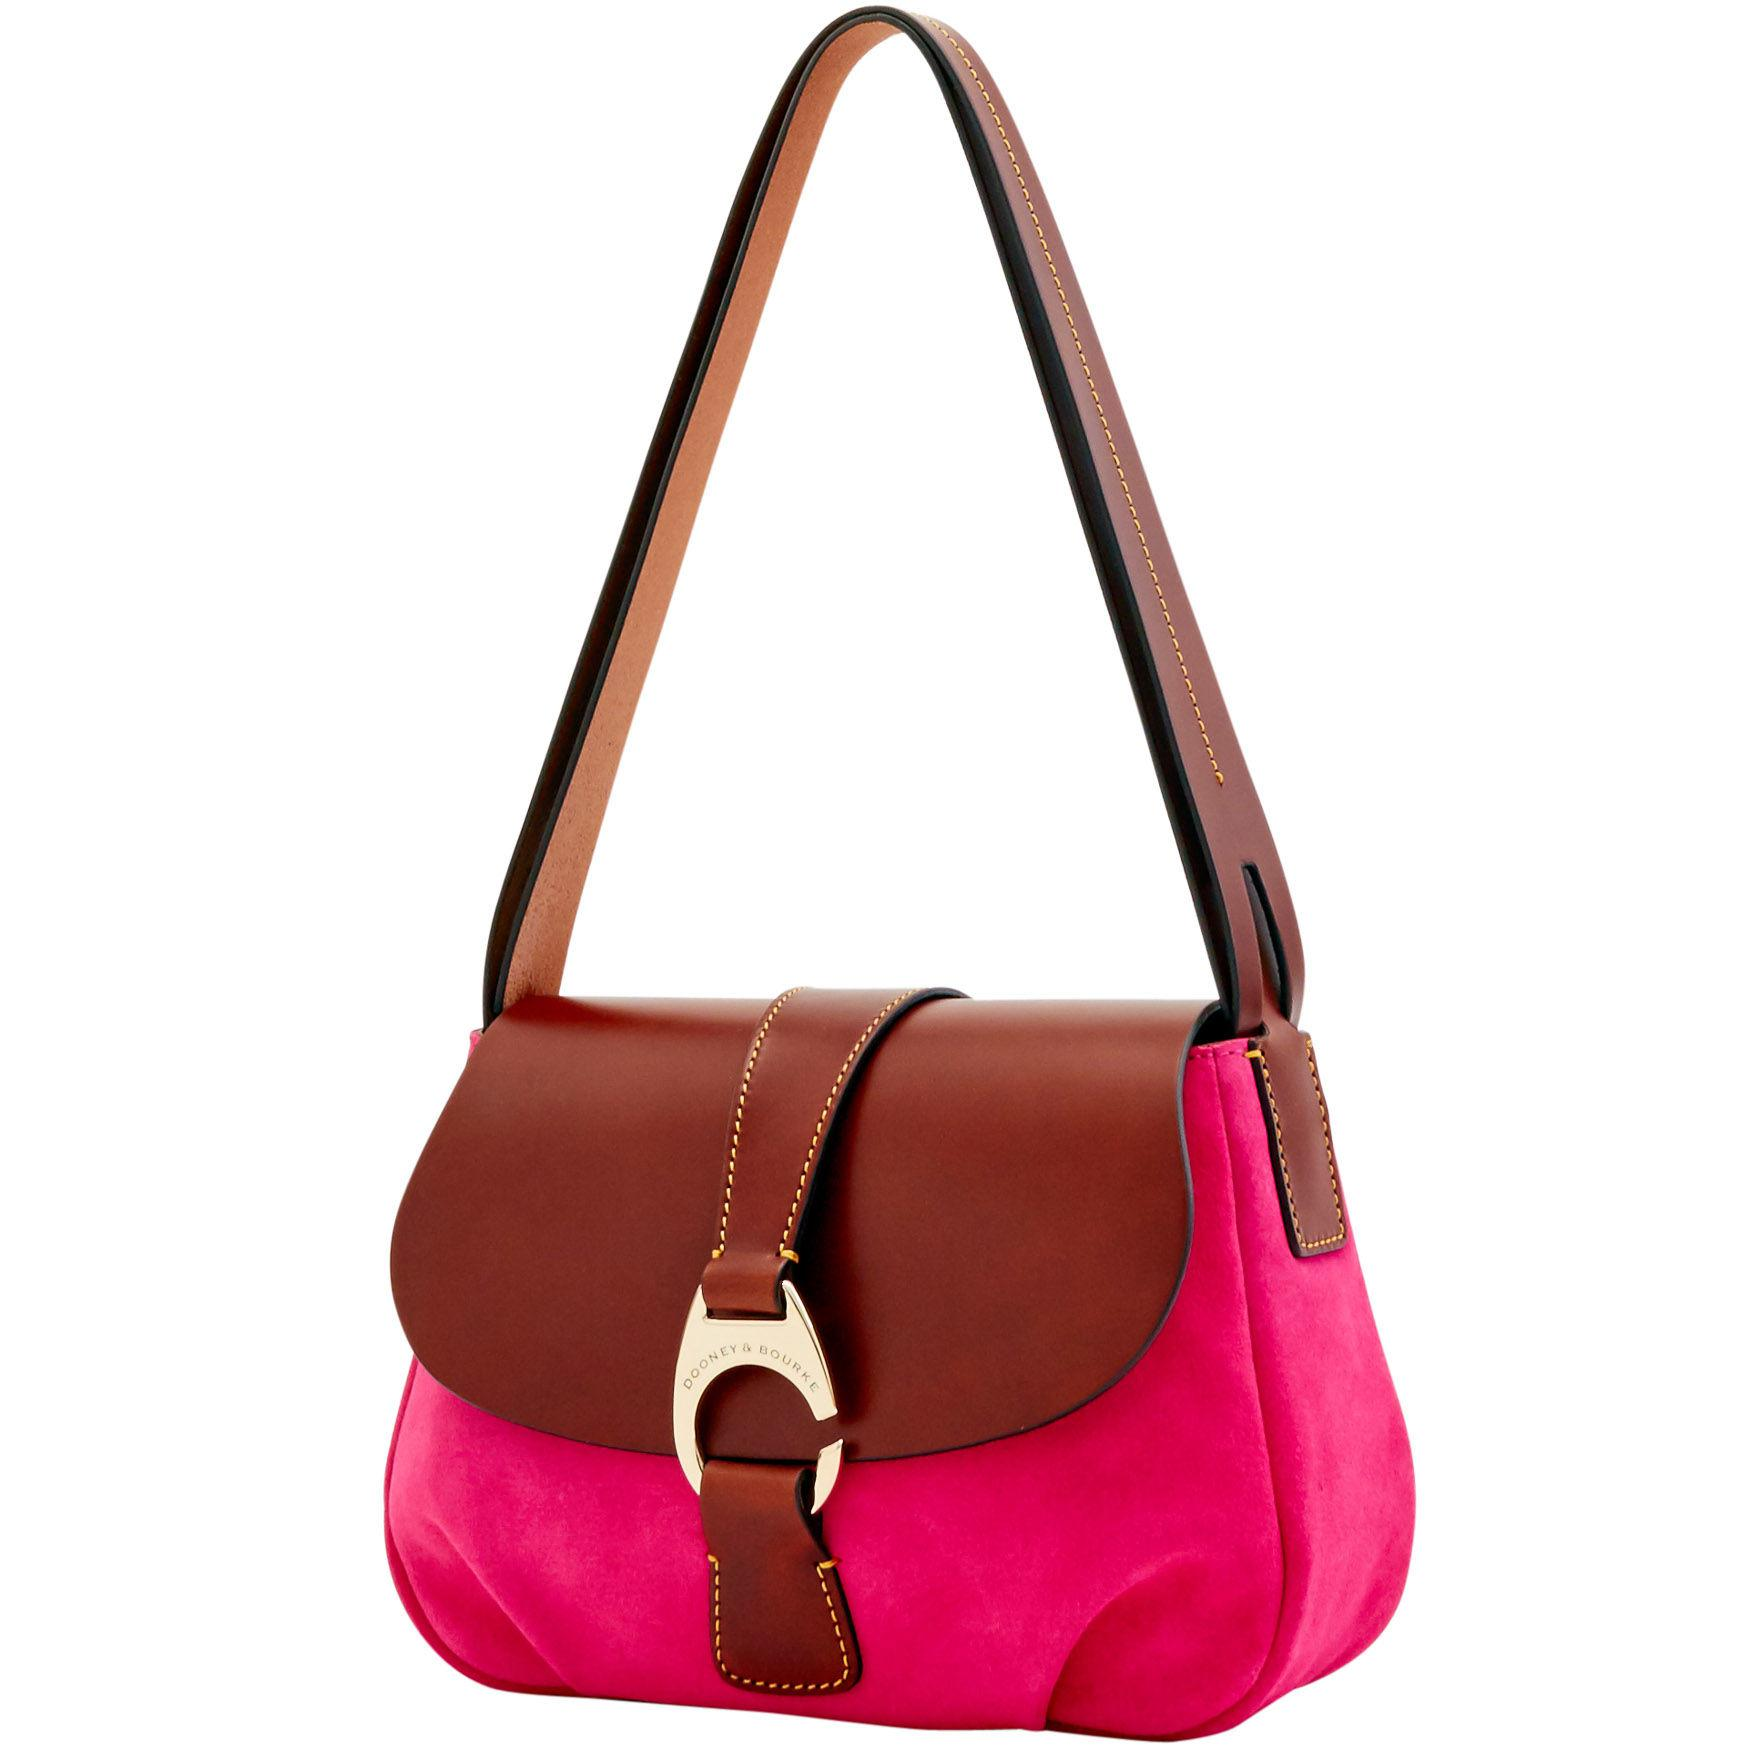 Lyst - Dooney   Bourke Derby Suede Large Flap in Pink - Save 60% 74a041e390bbc